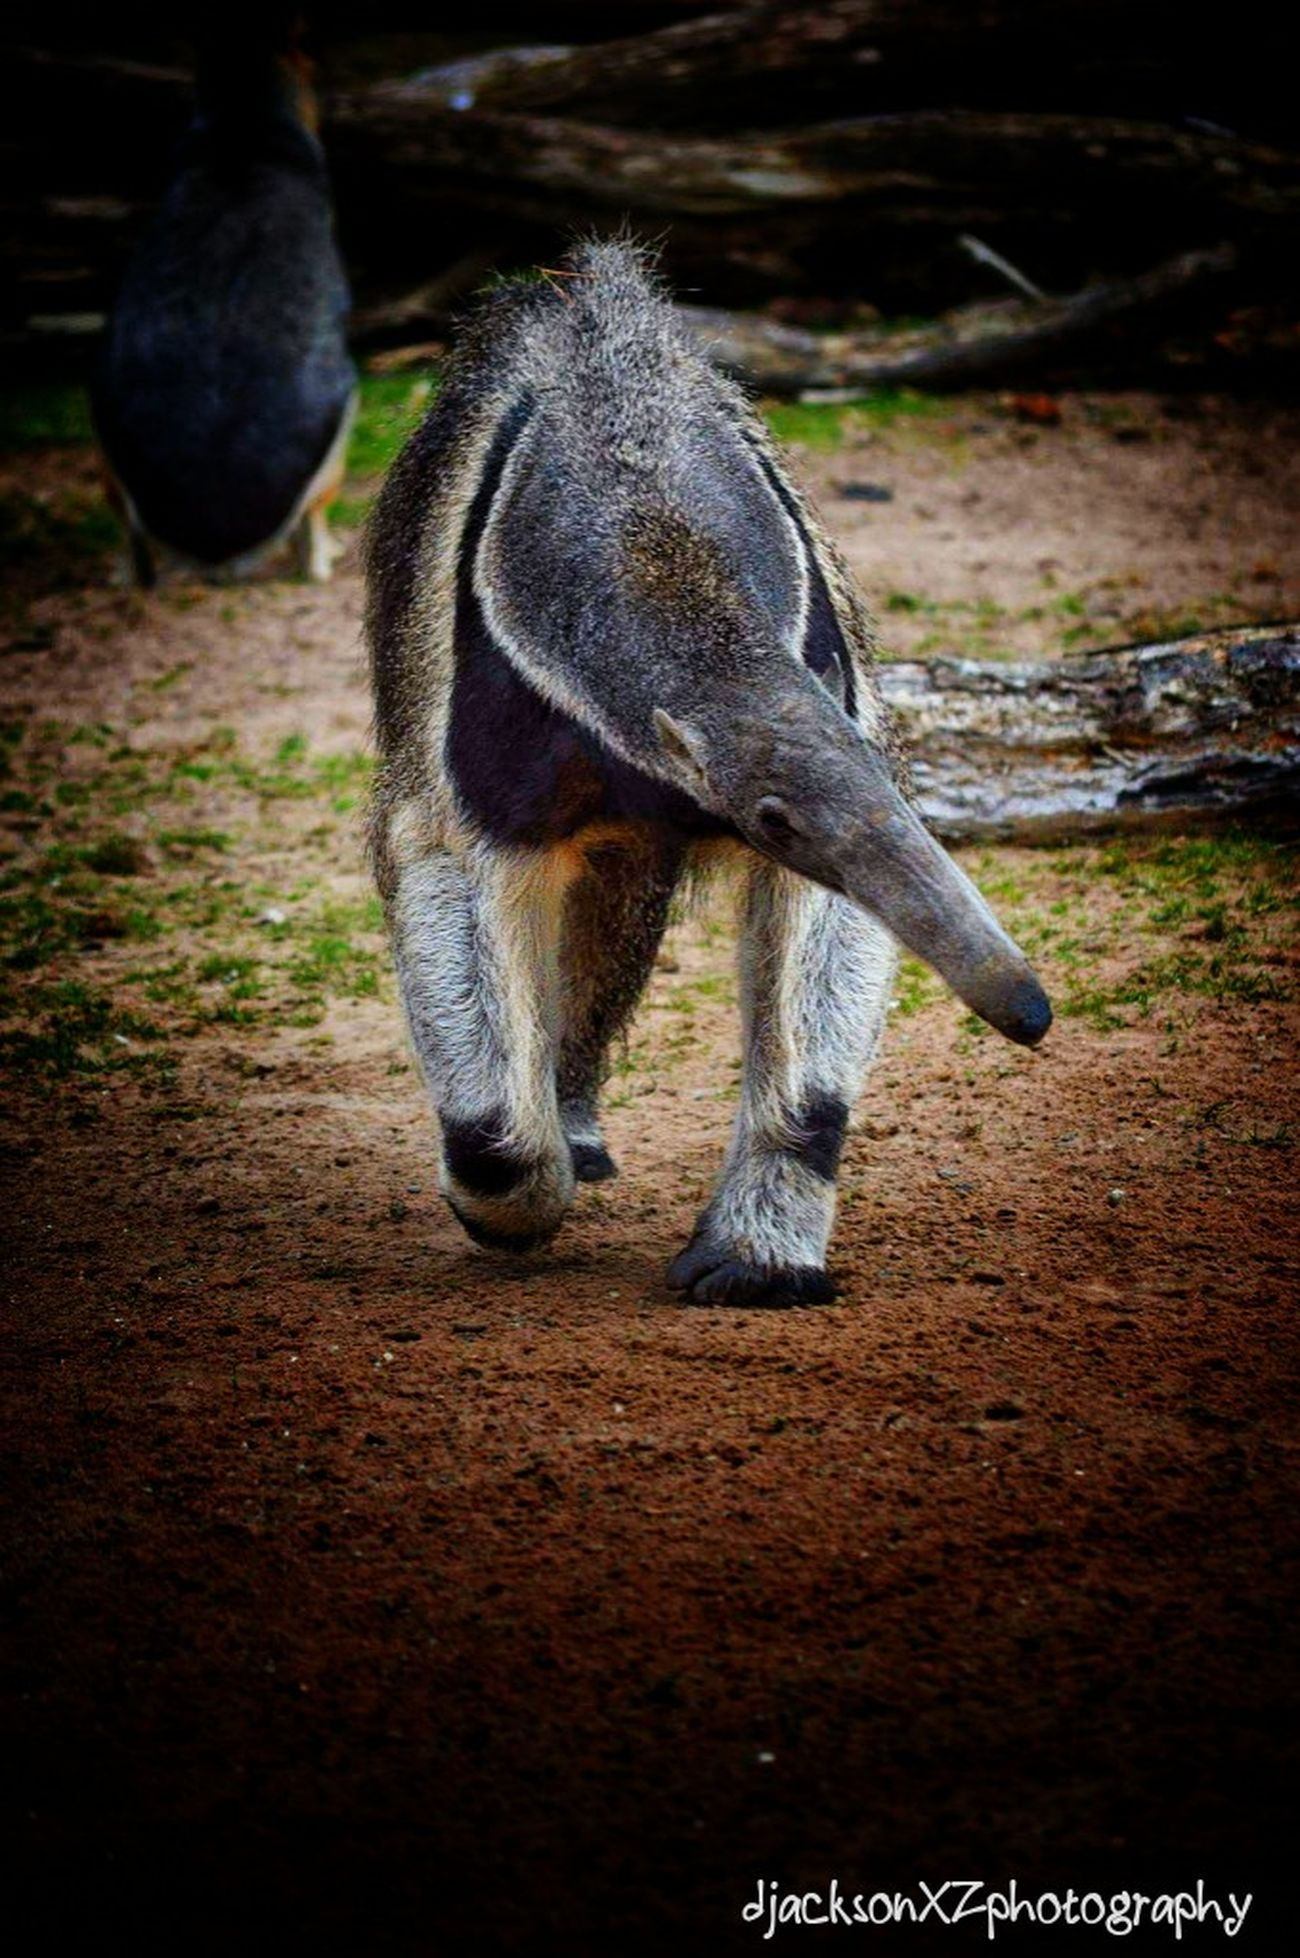 Giant Anteater … Outdoors Tail Nature Mammal Day Animal Themes One Animal Blackpool Blackpoolzoo Zoo Zoo Animals  Zoophotography Photography Wildlife & Nature Wildlifephotography